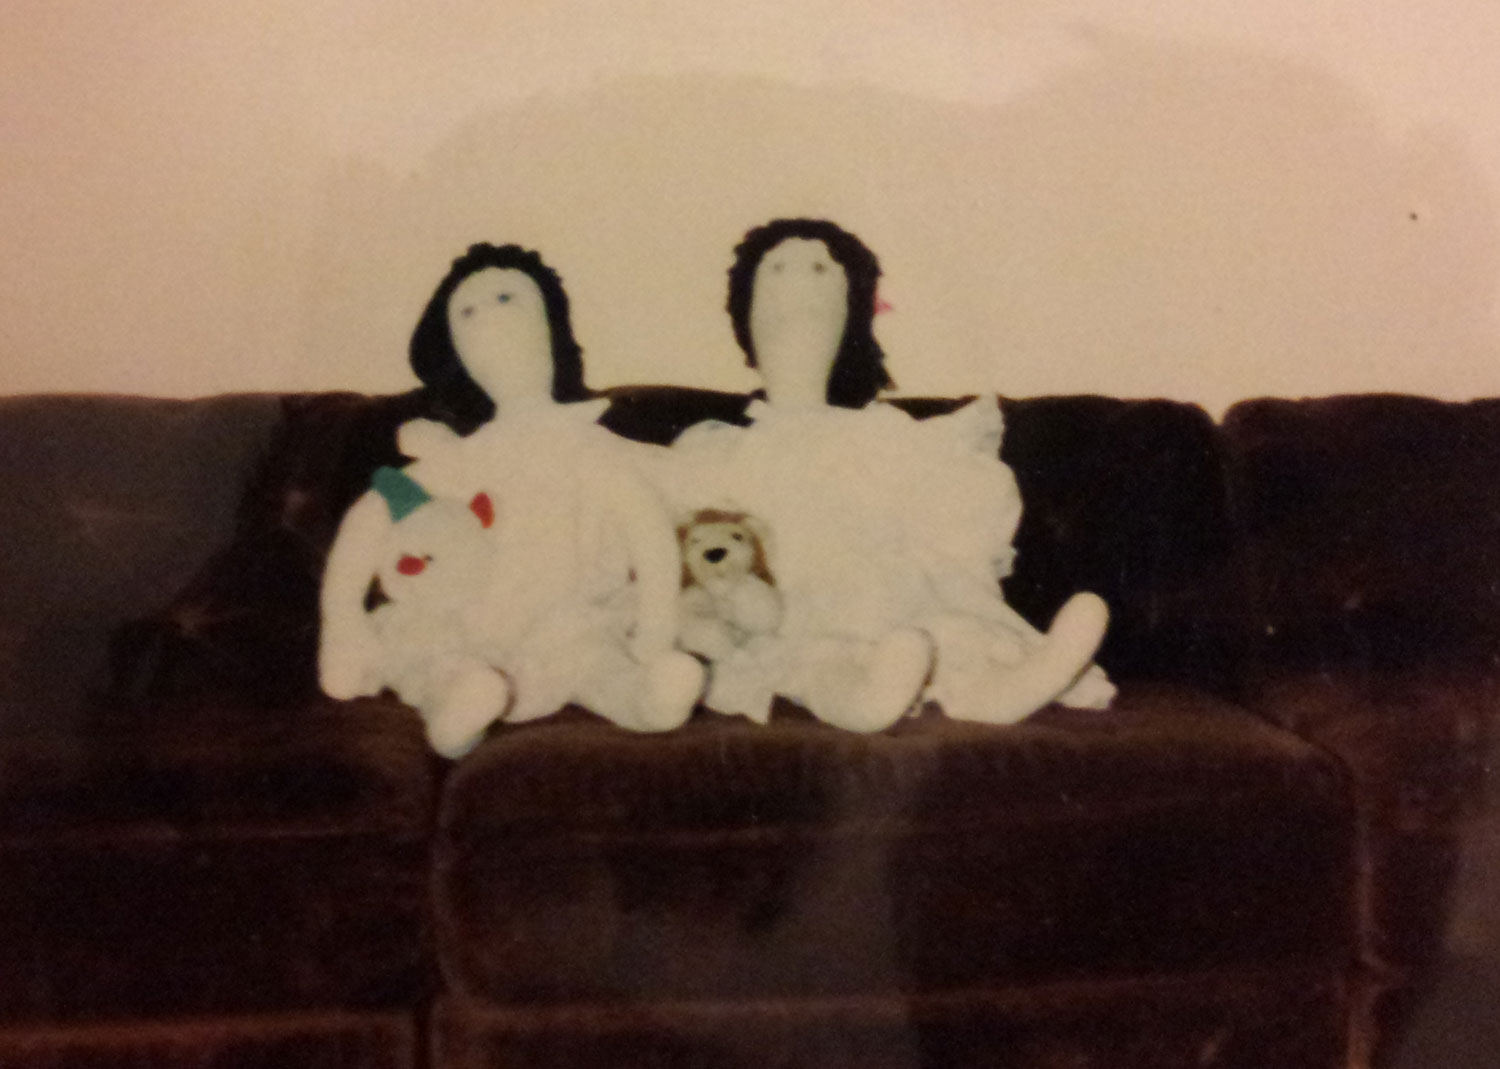 Throwback Thursday: Wannabe Cabbage Patch Dolls